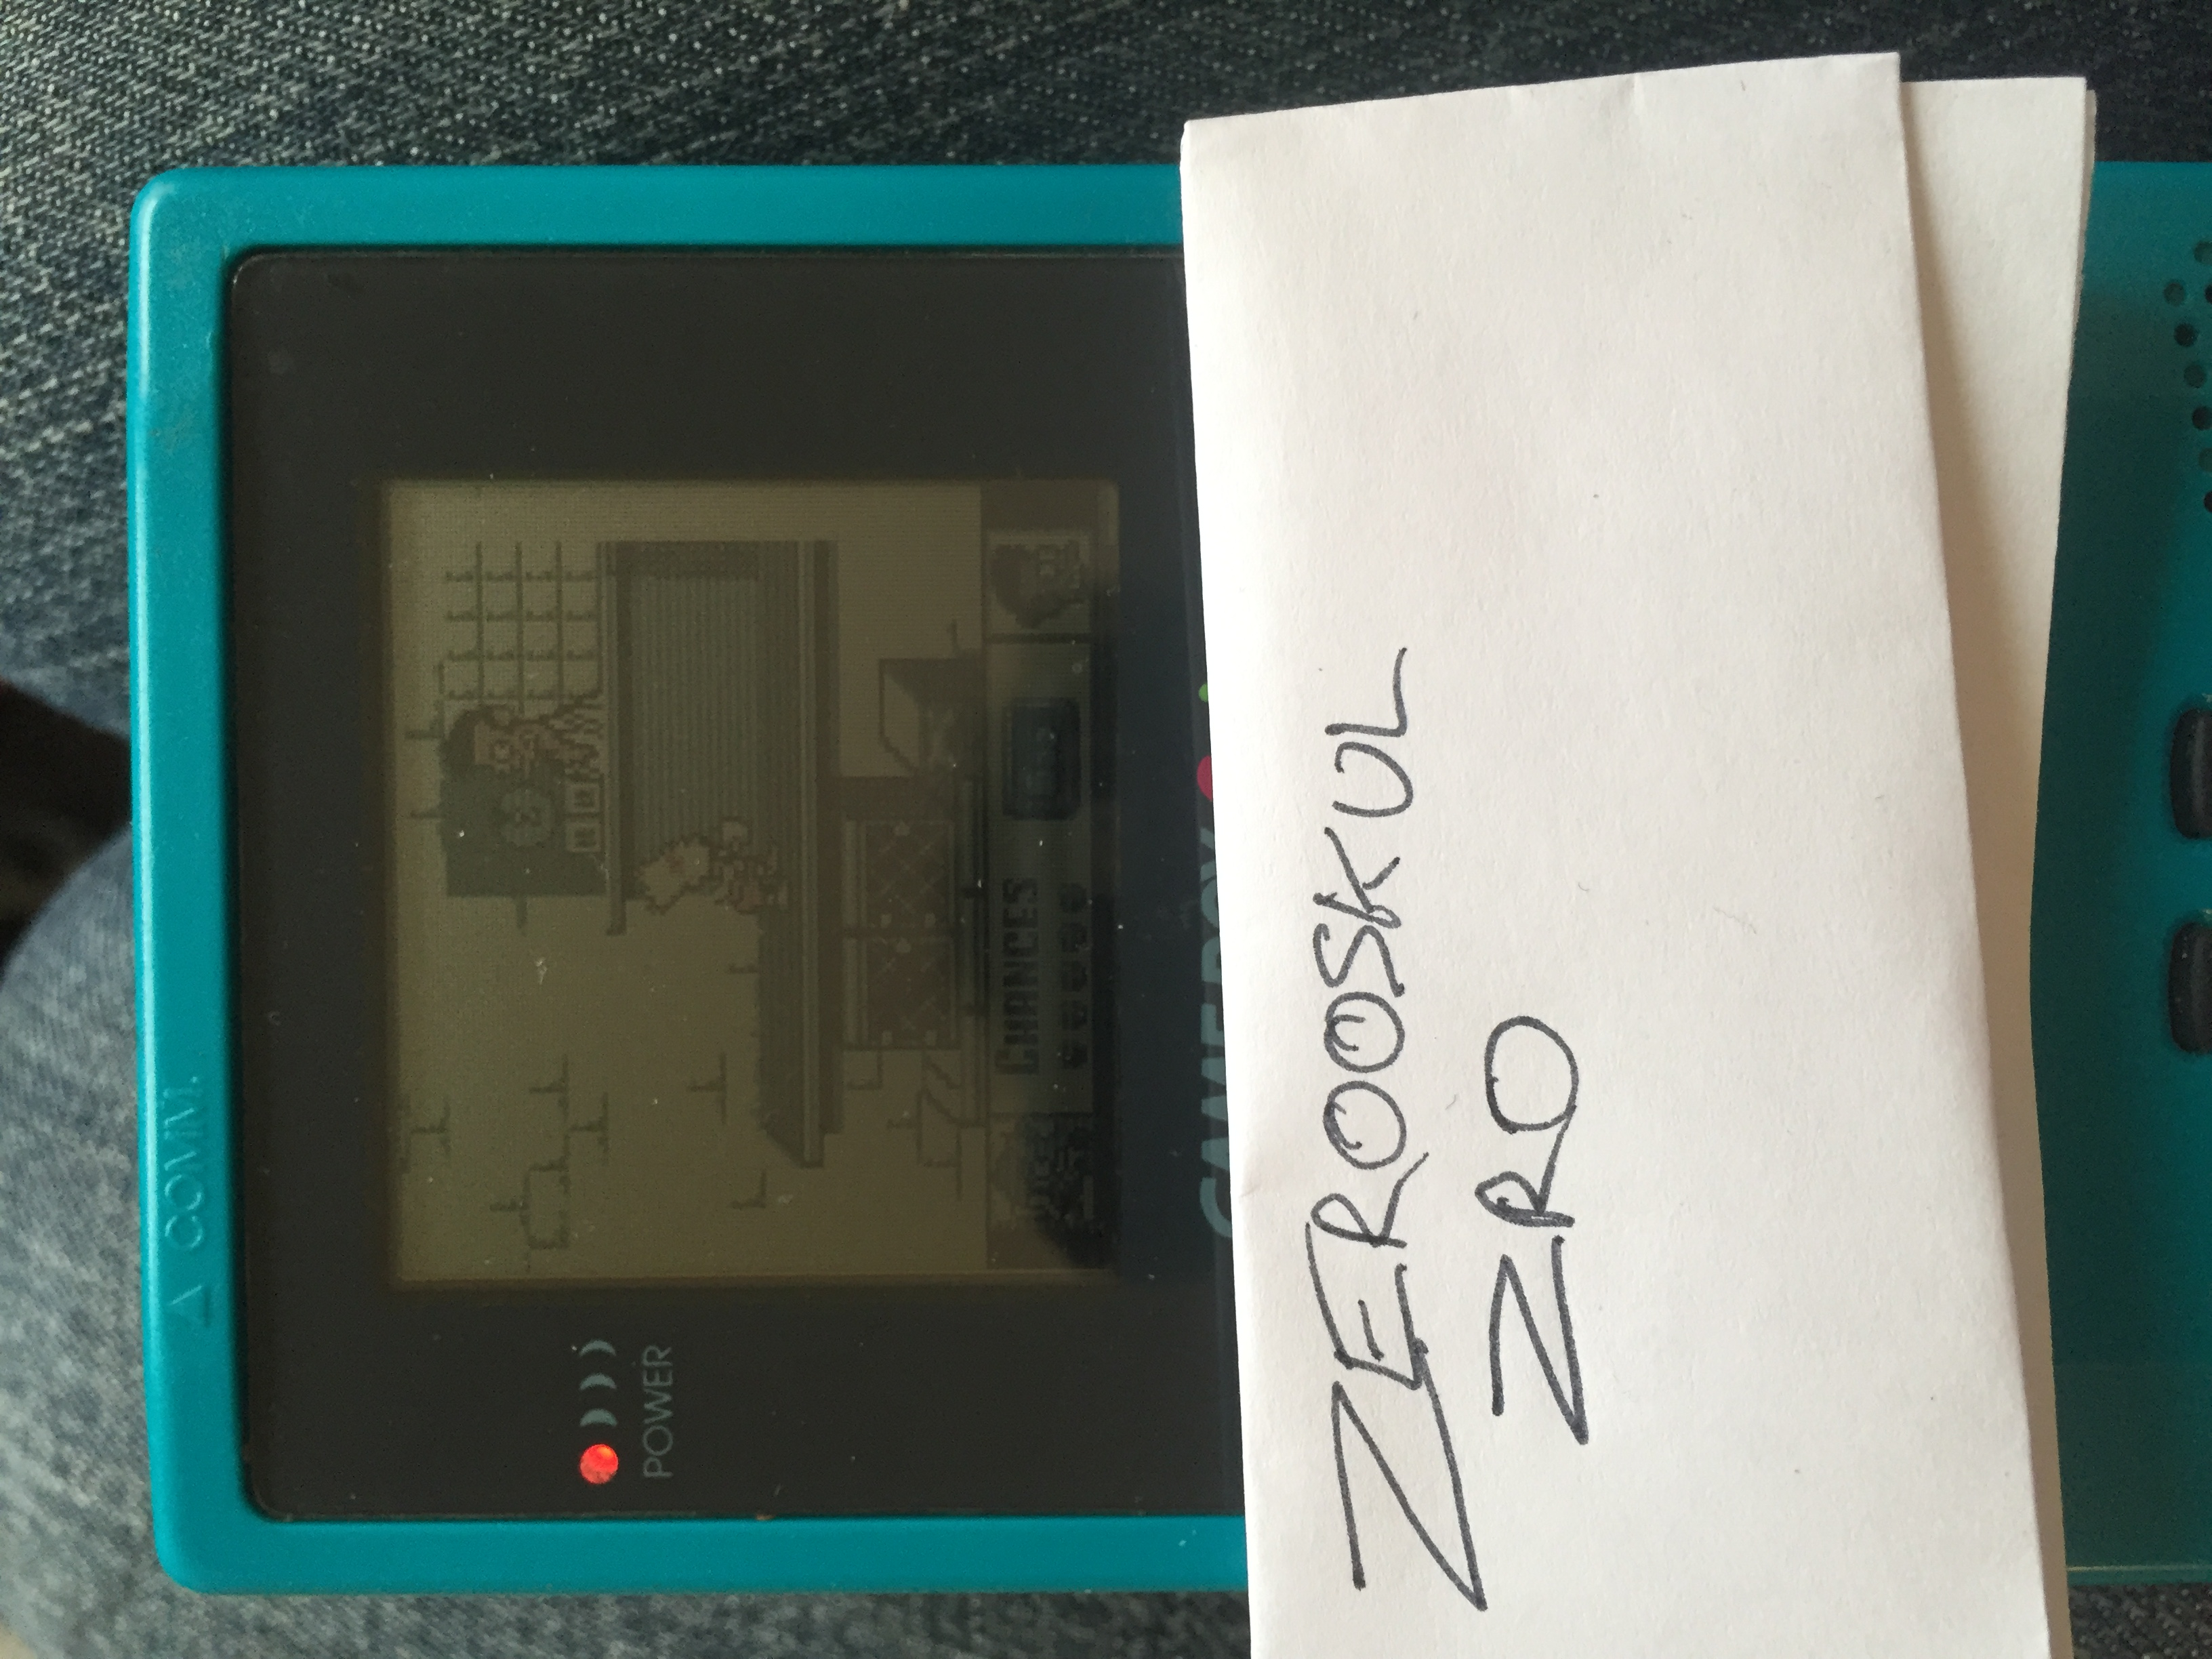 zerooskul: The Simpsons: Bart vs. The Juggernauts (Game Boy) 106,910 points on 2018-05-16 13:22:58